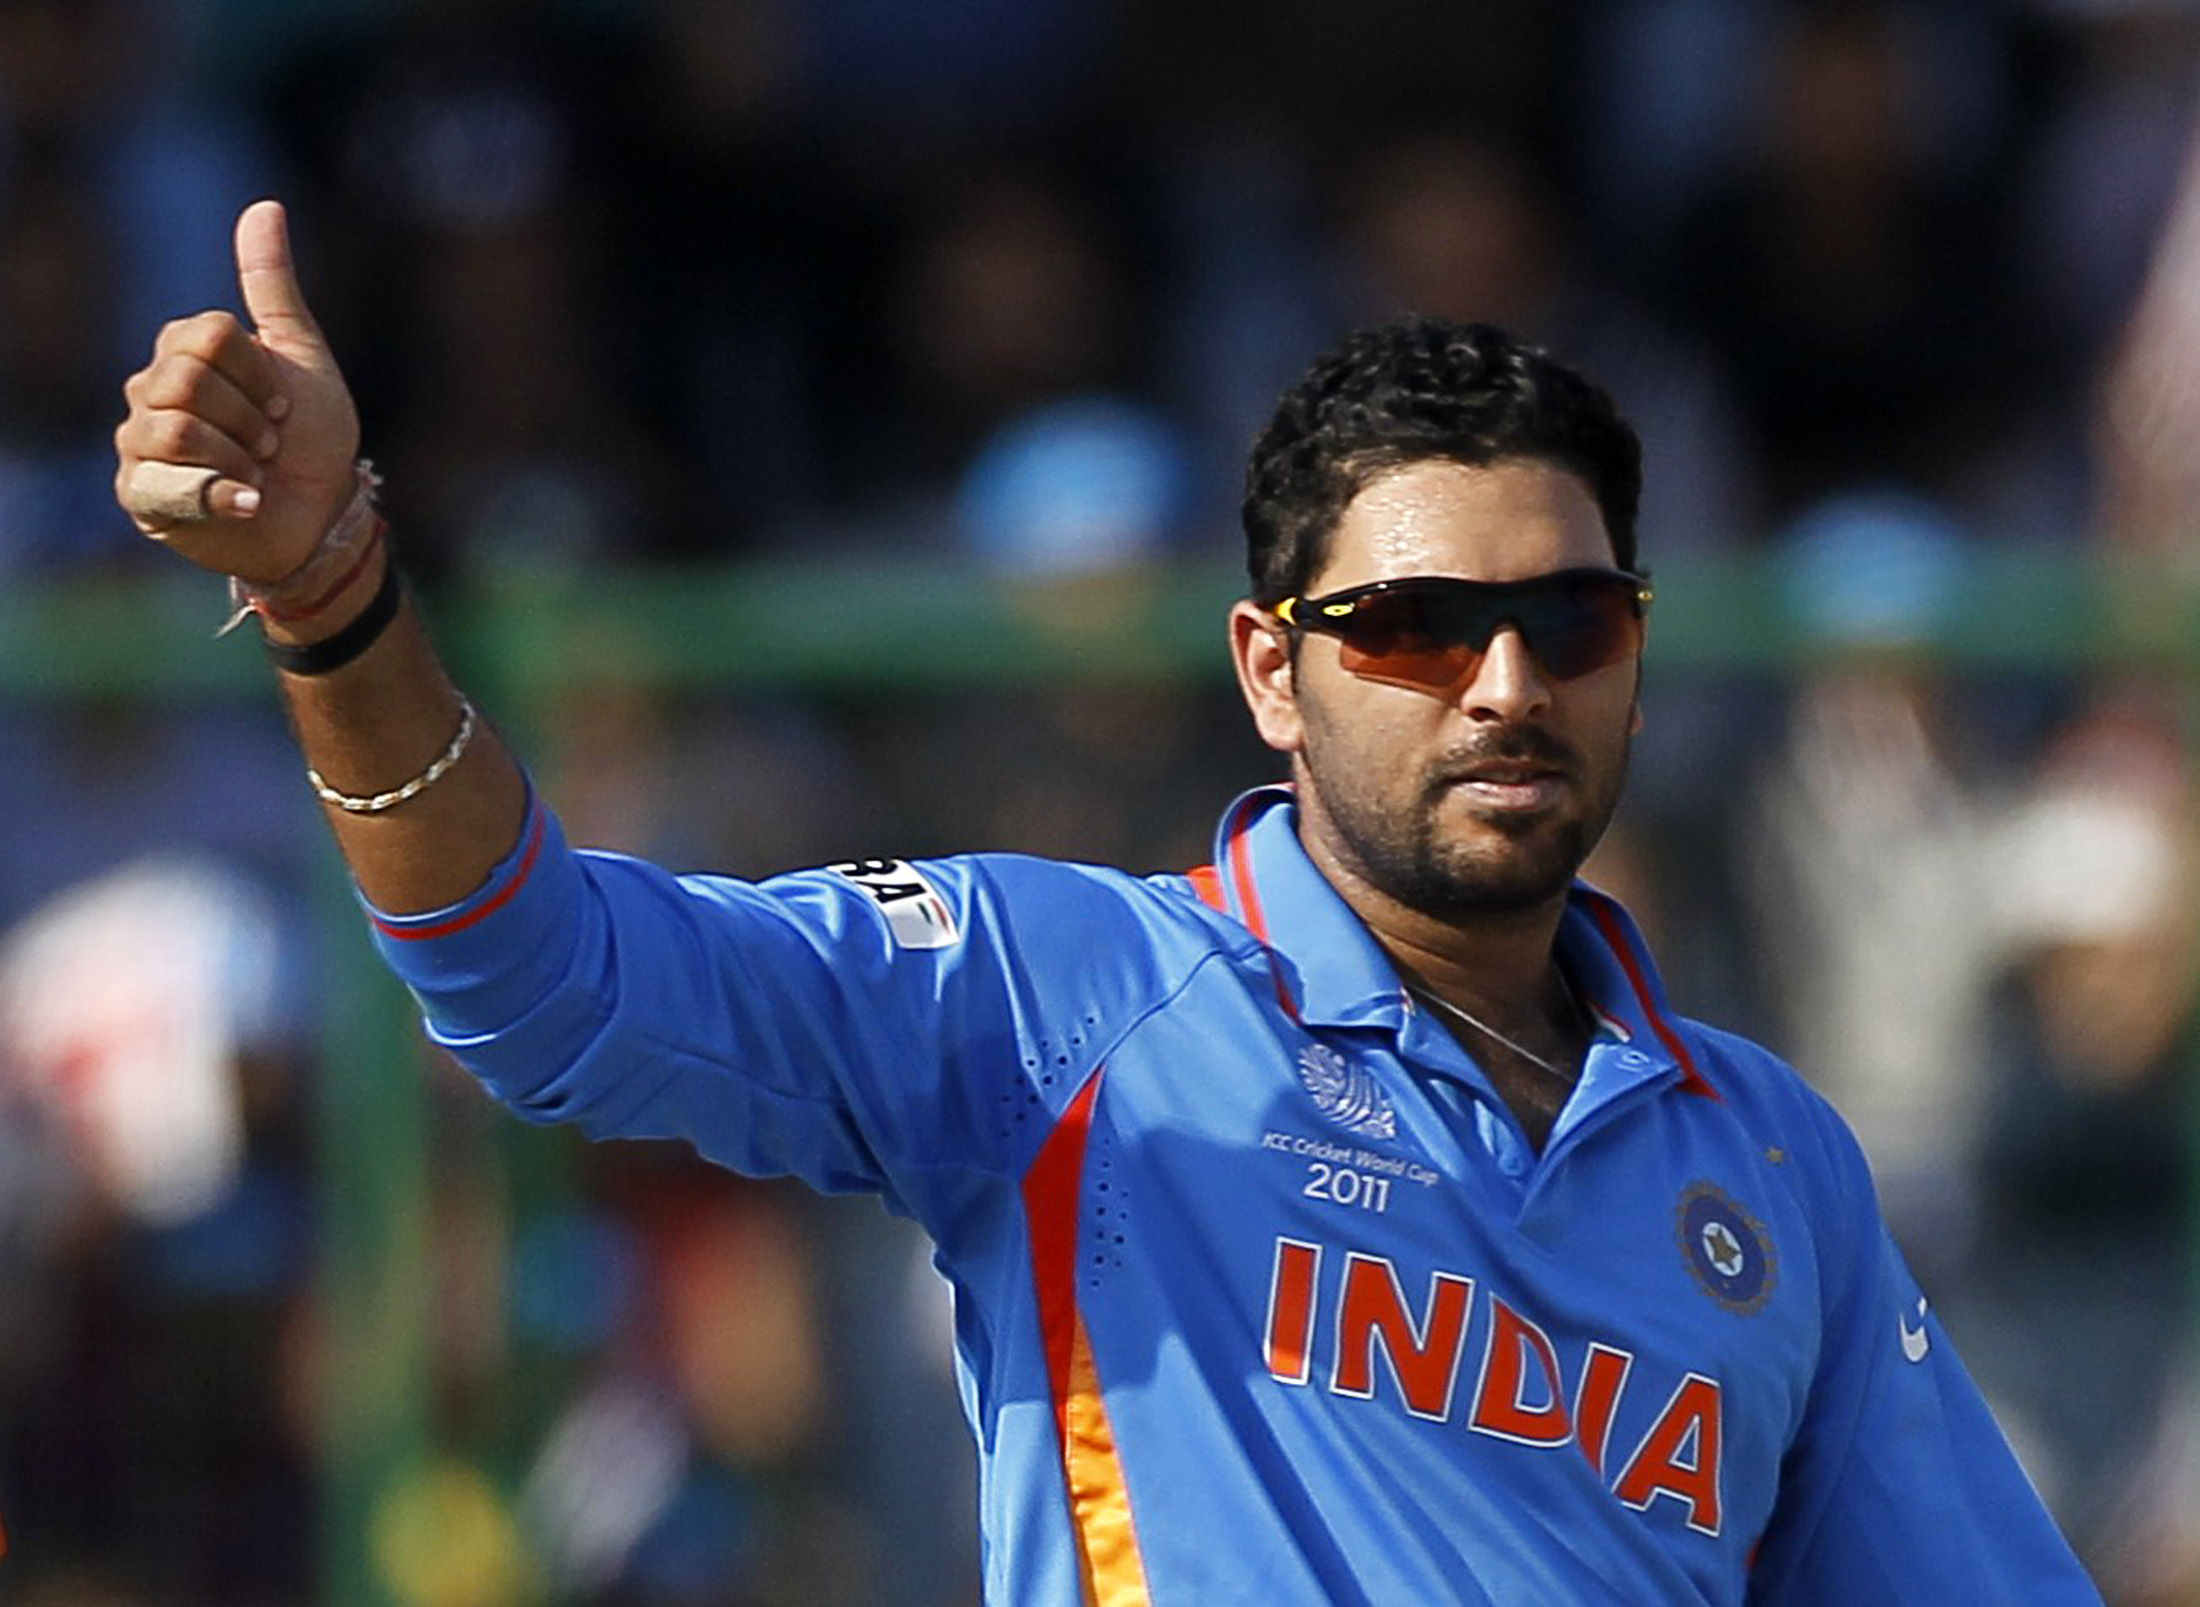 Yuvraj Singh backs India to retain the World Cup